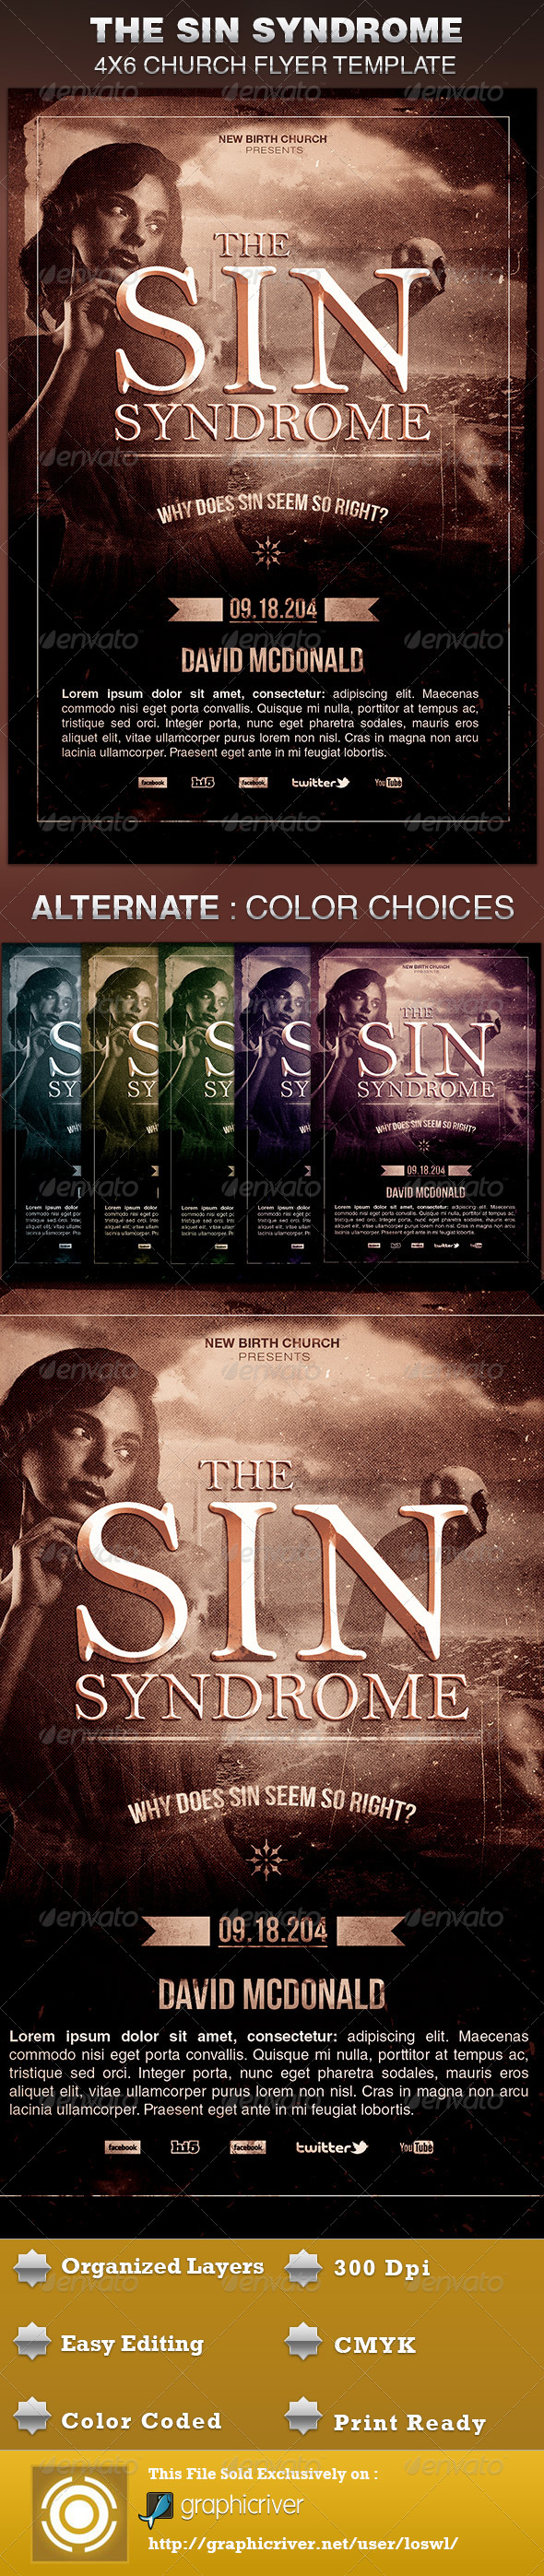 The Sin Syndrome Church Flyer Template - Church Flyers